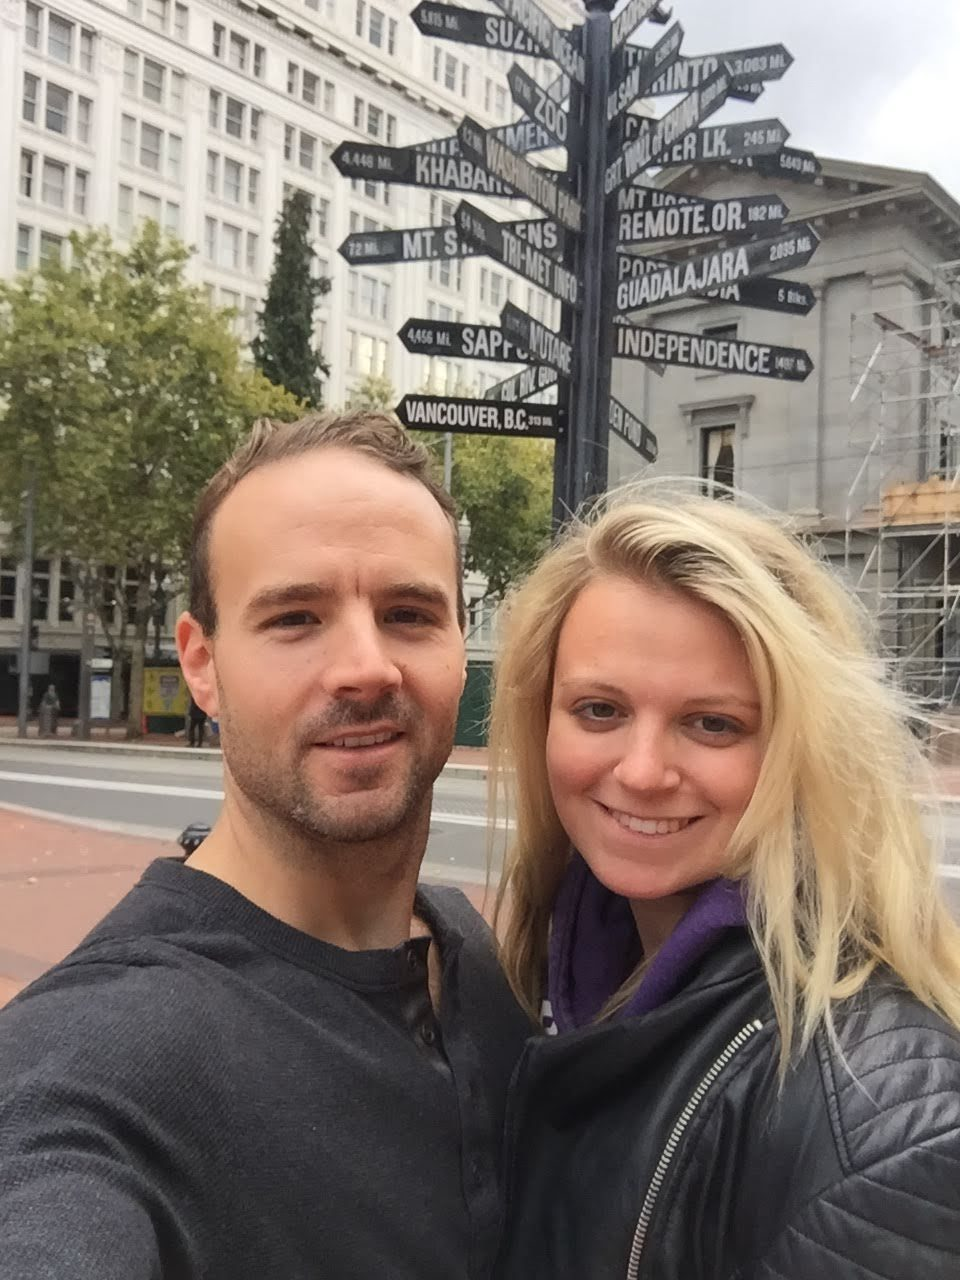 Couple by the signpost in Portland, Oregon